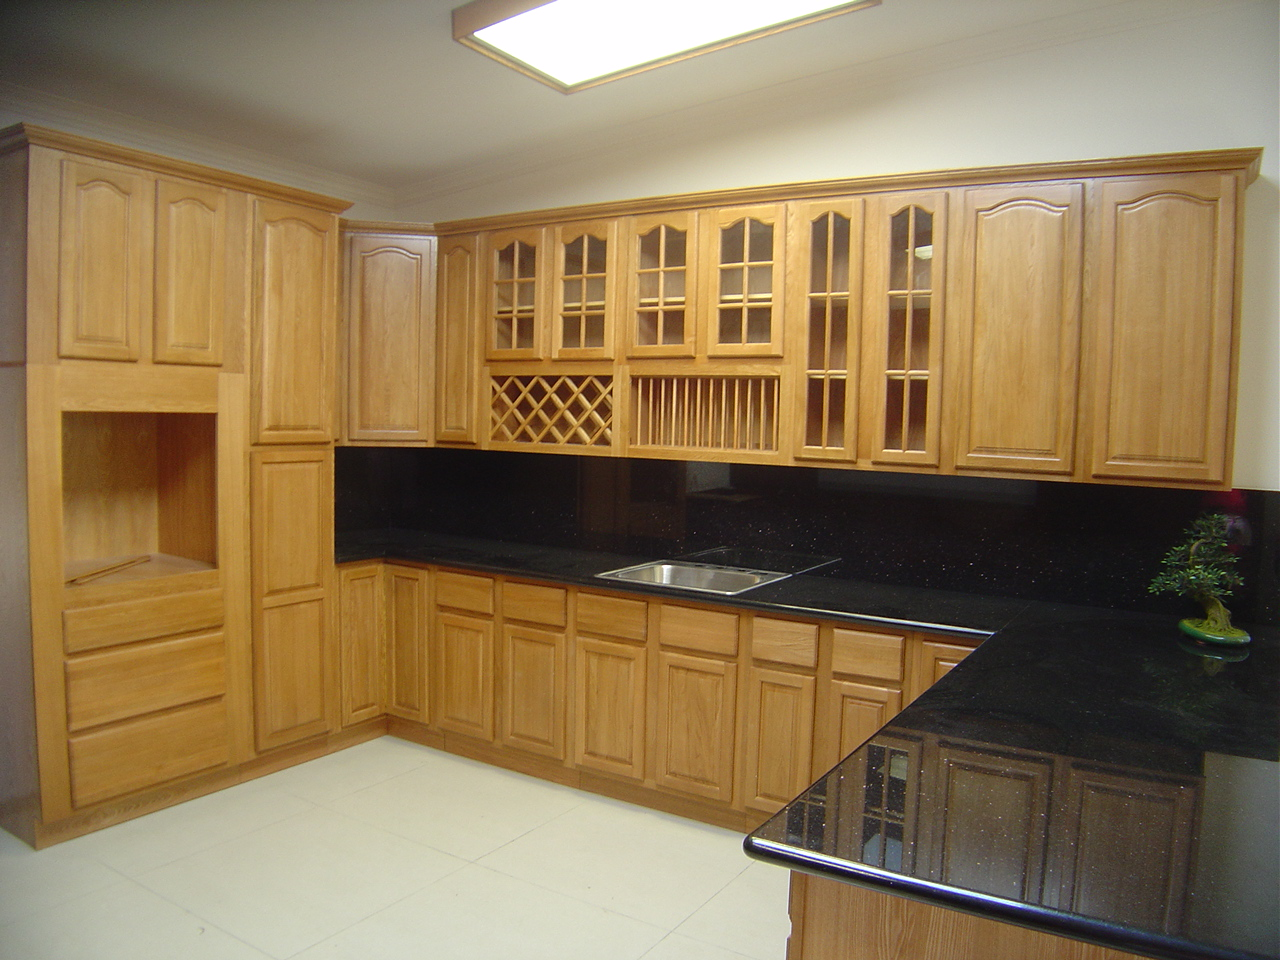 Cabinet Design Ideas For Kitchen ~ Special kitchen cabinet design and decor interior